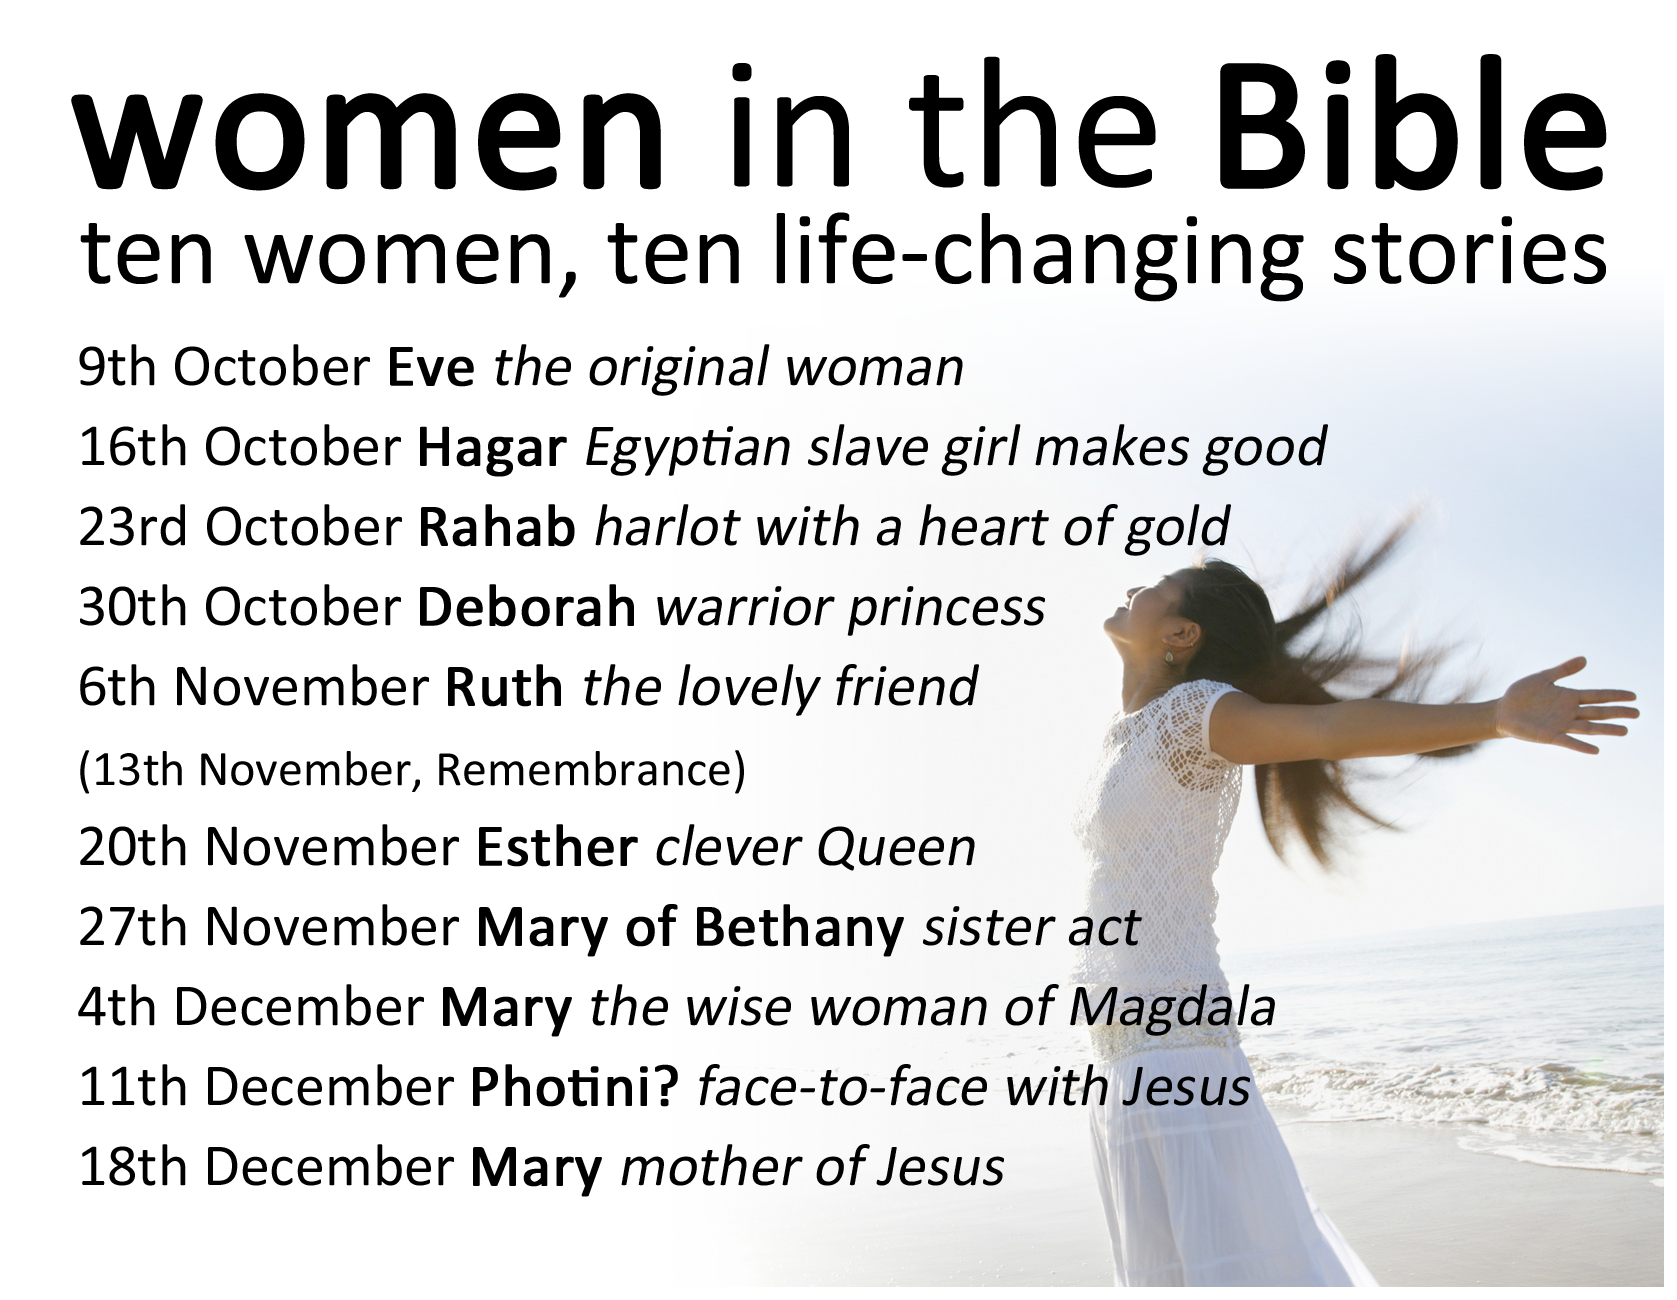 Pin by Betty Forde on To Be a Woman of God ... | Pinterest